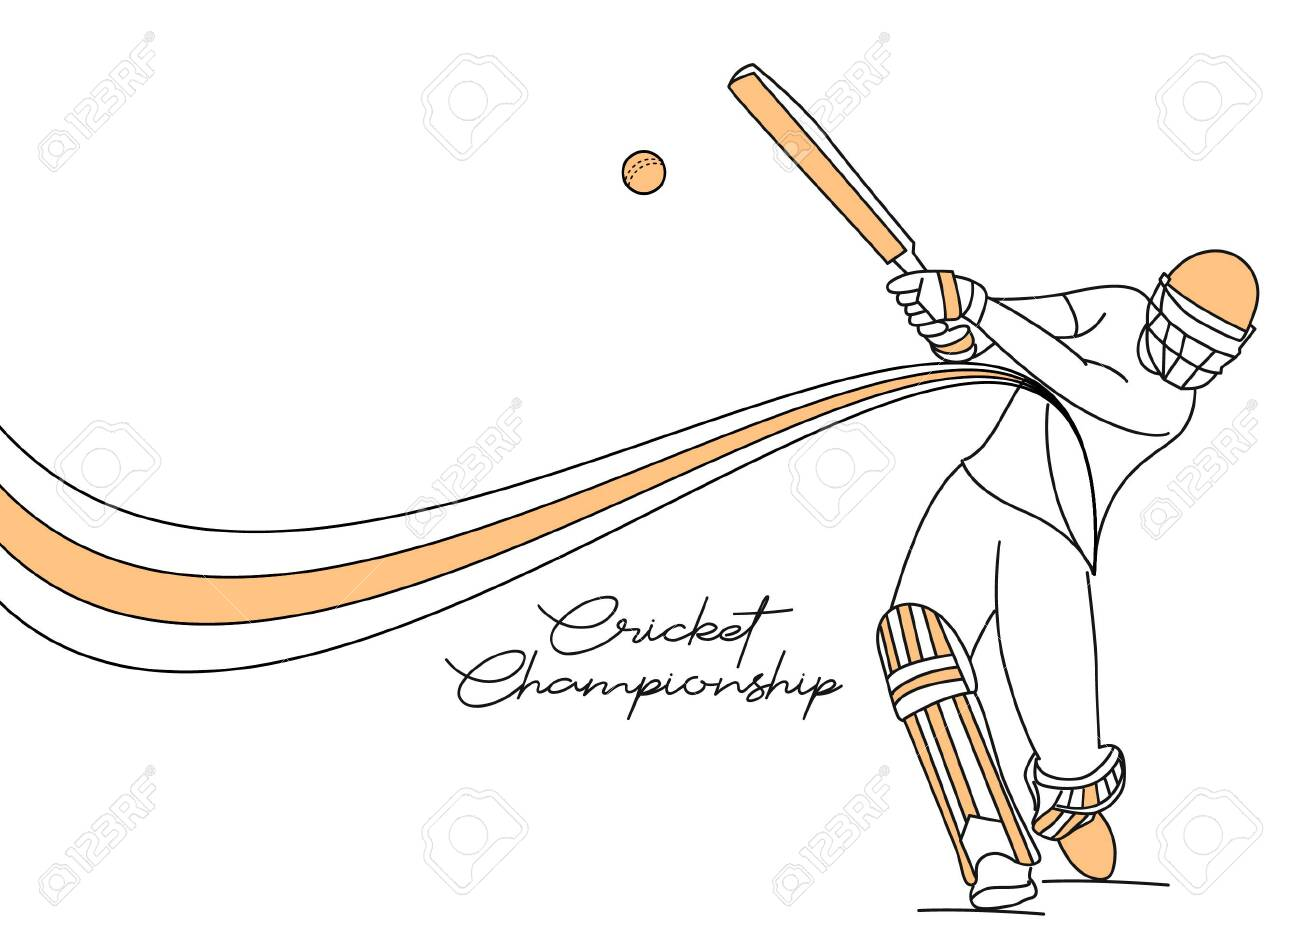 Abstract colorful pattern with batsman and bowler playing cricket